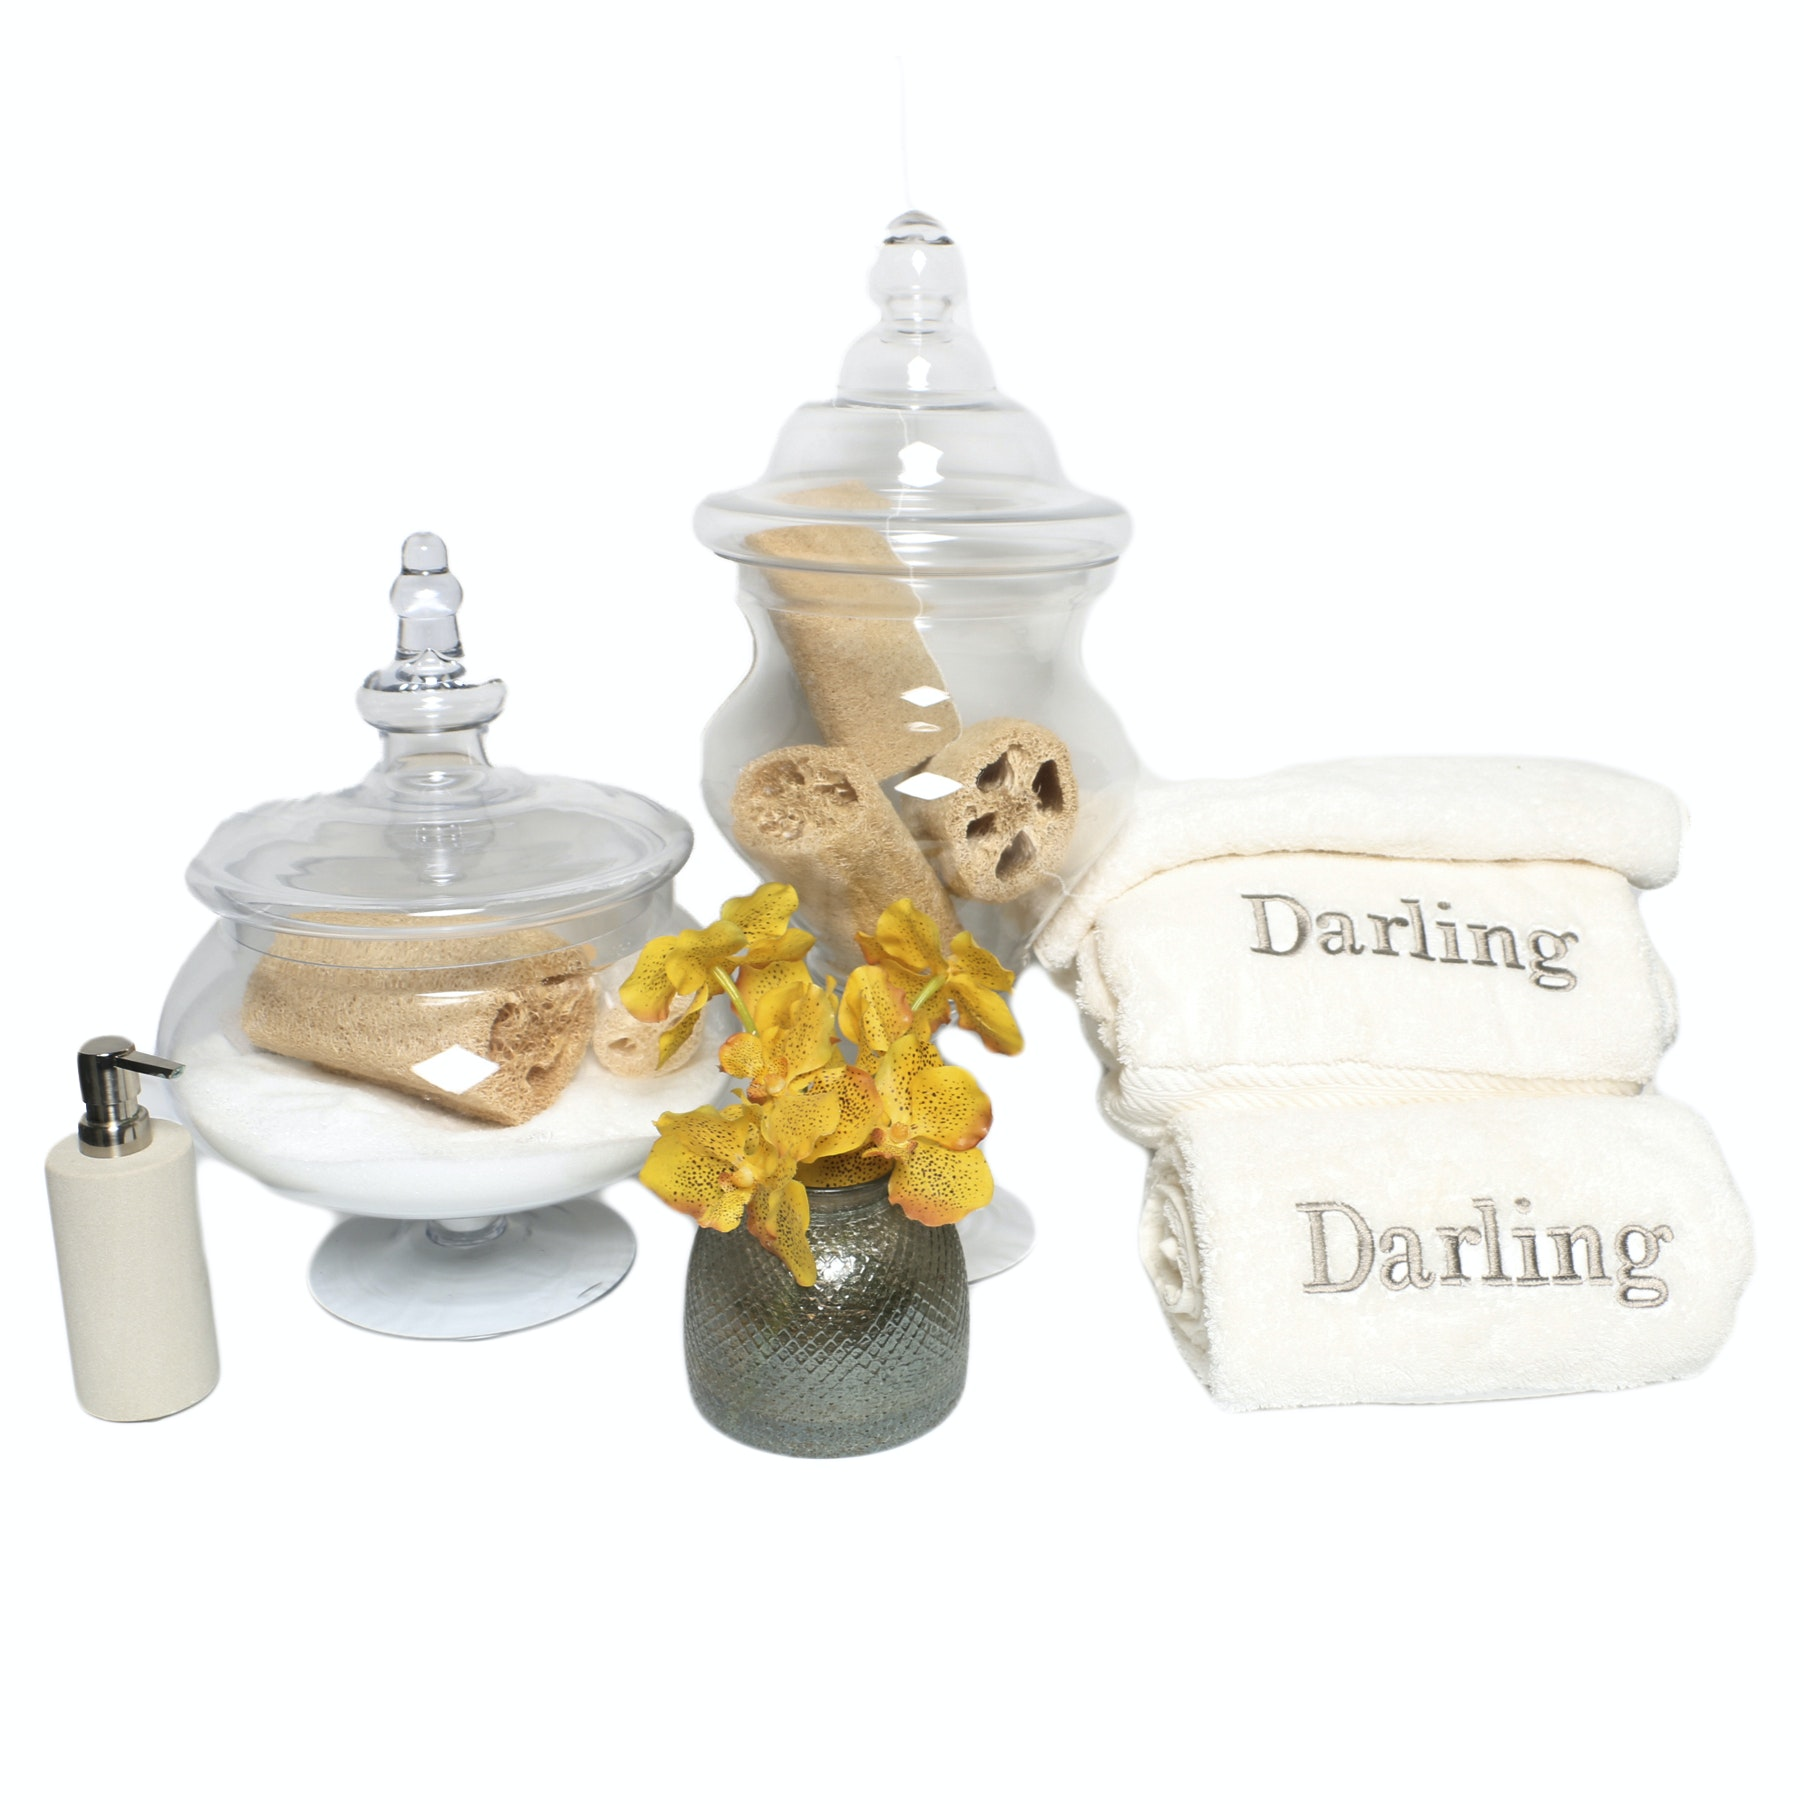 Bathroom Accessories including Towels and Soap Dispenser